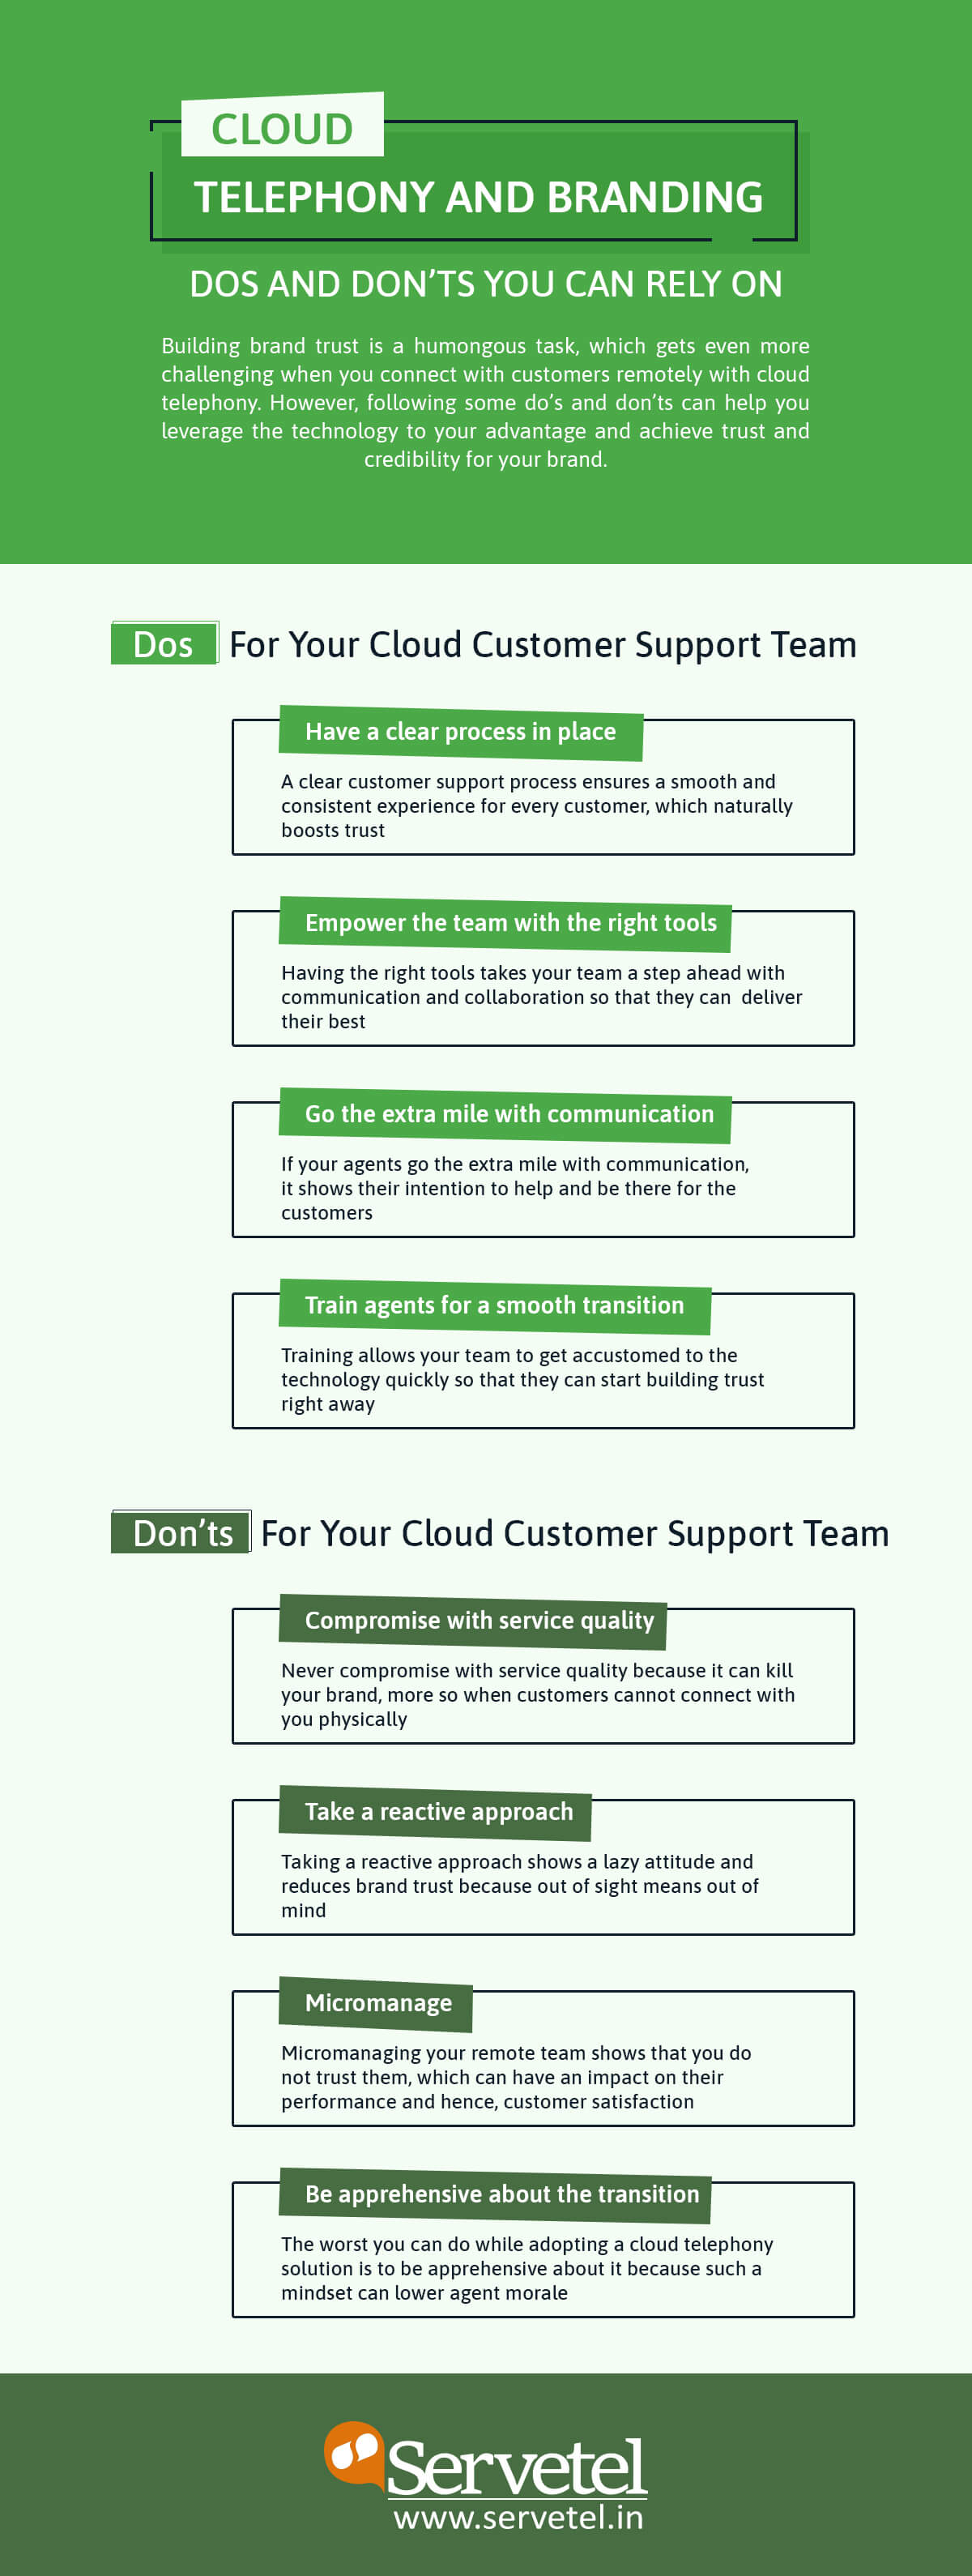 Infographic for dos and donts of branding with cloud telephony